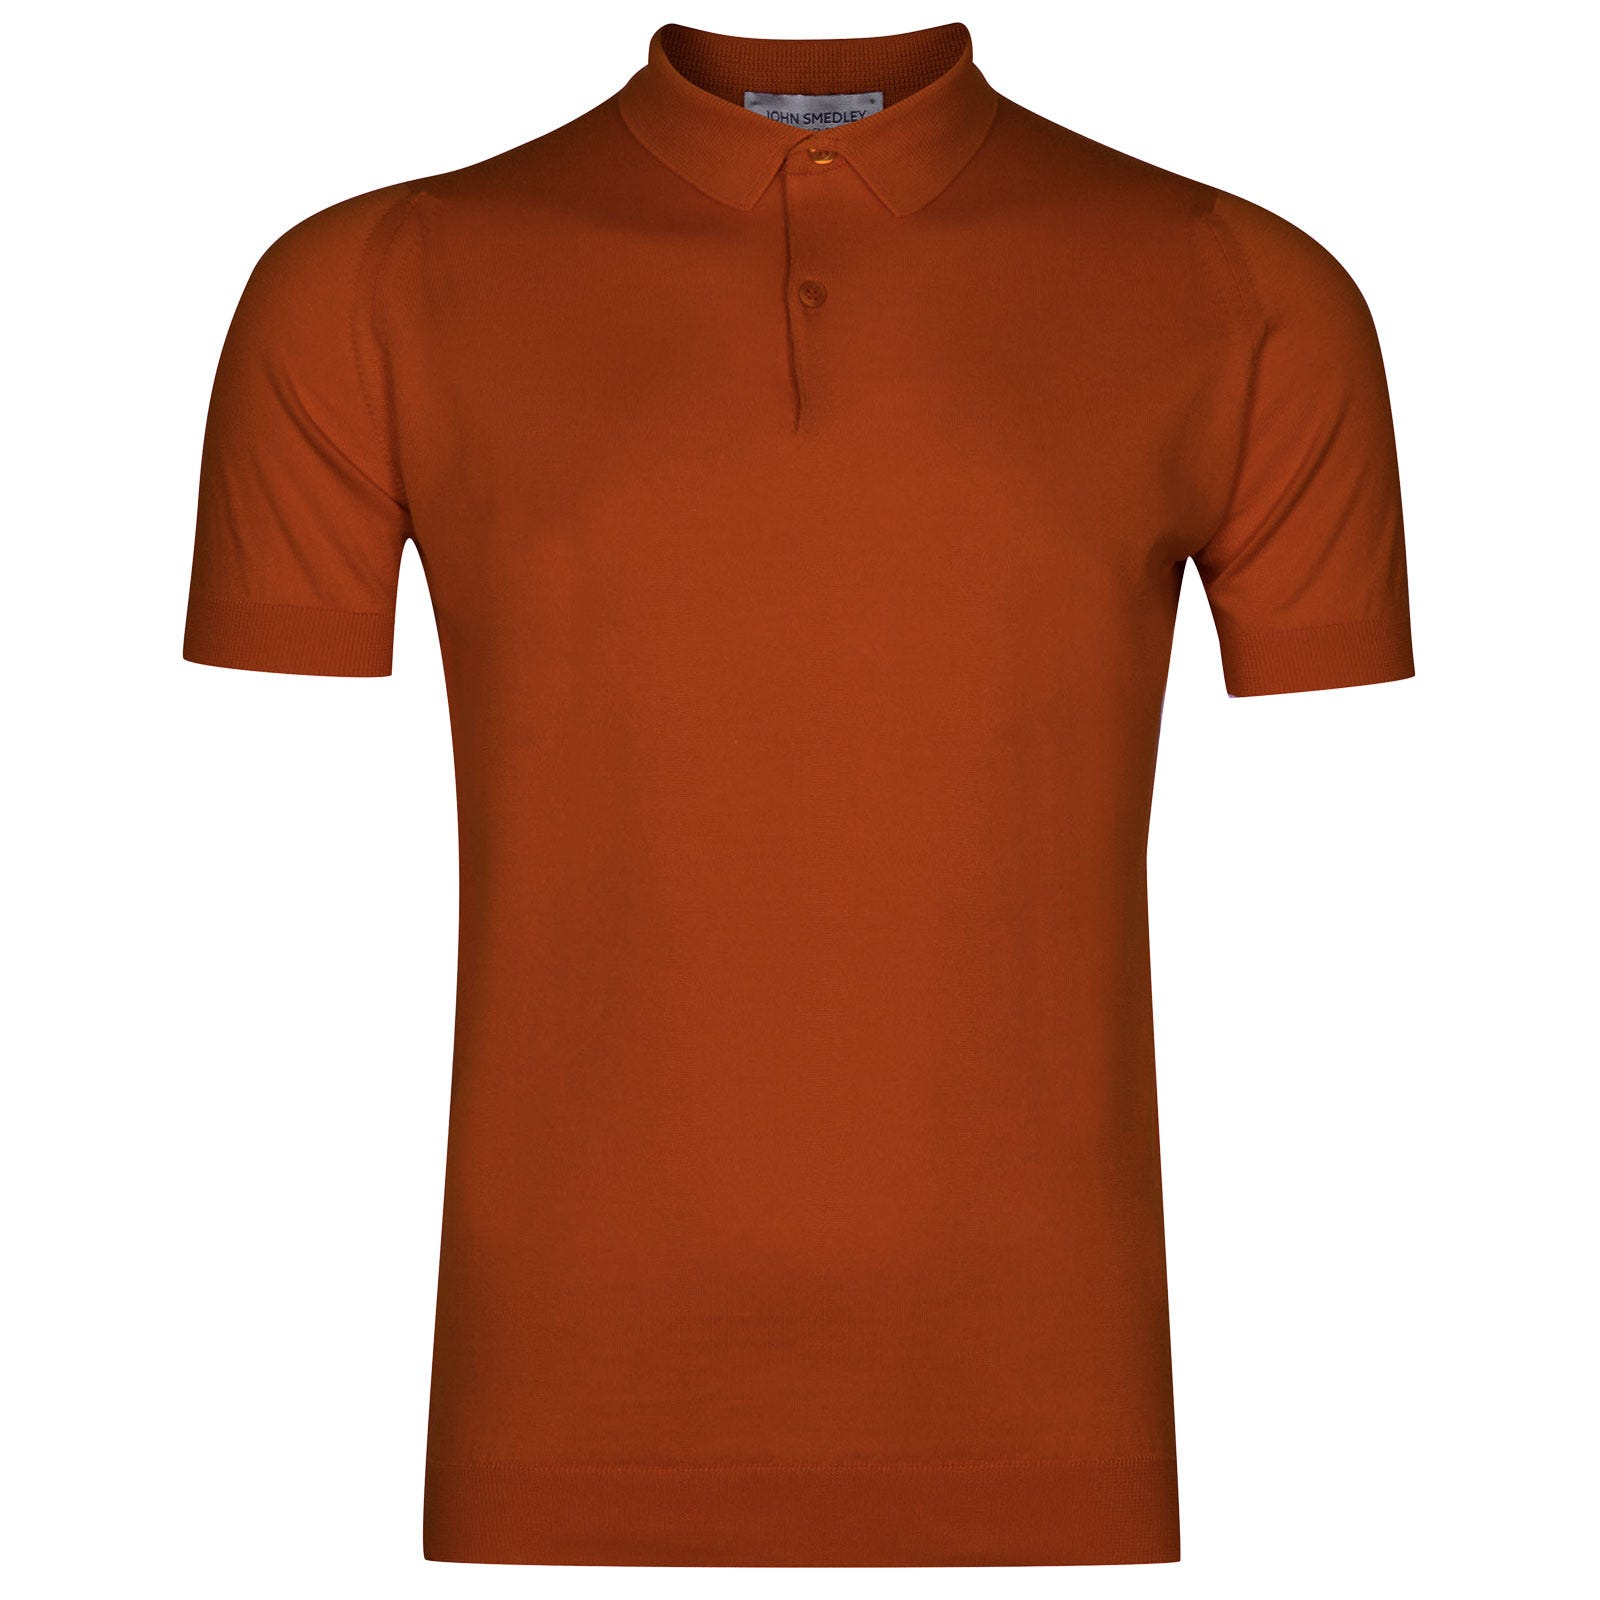 John Smedley rhodes Sea Island Cotton Shirt in Flare Orange-S